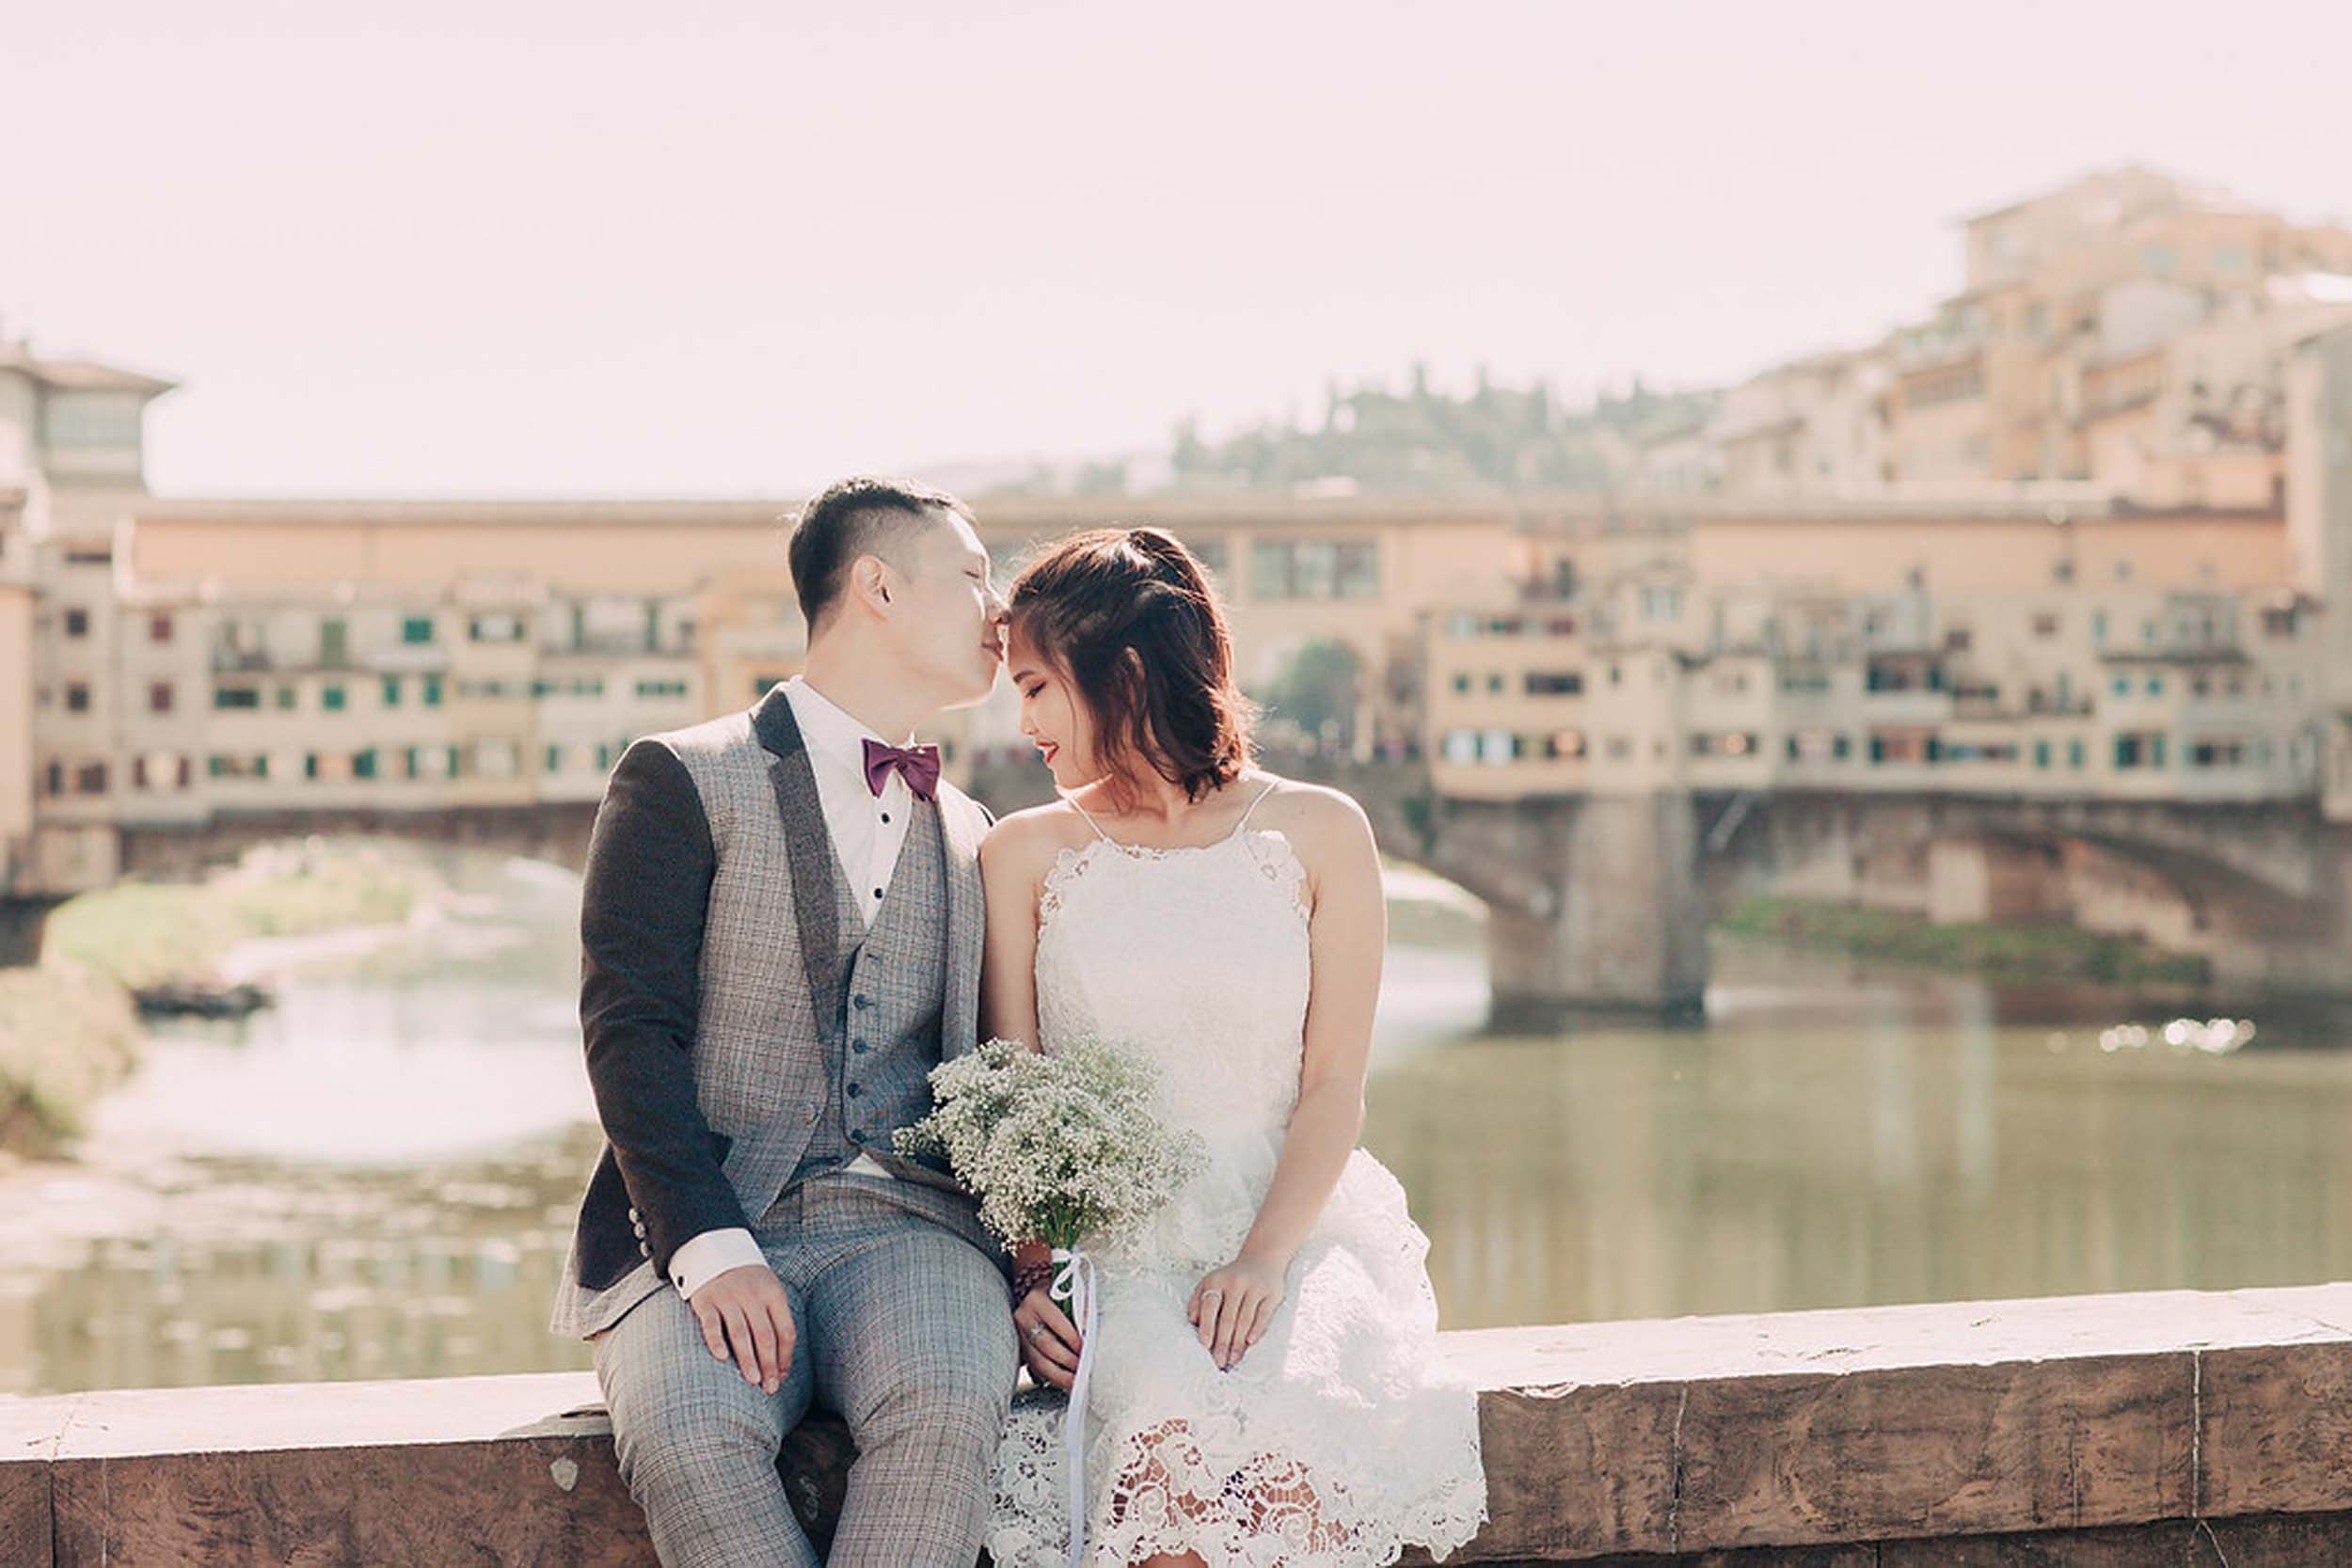 Man kissing partner's forehead sitting on bridge ledge together at Ponte Vecchio in Florence, Italy